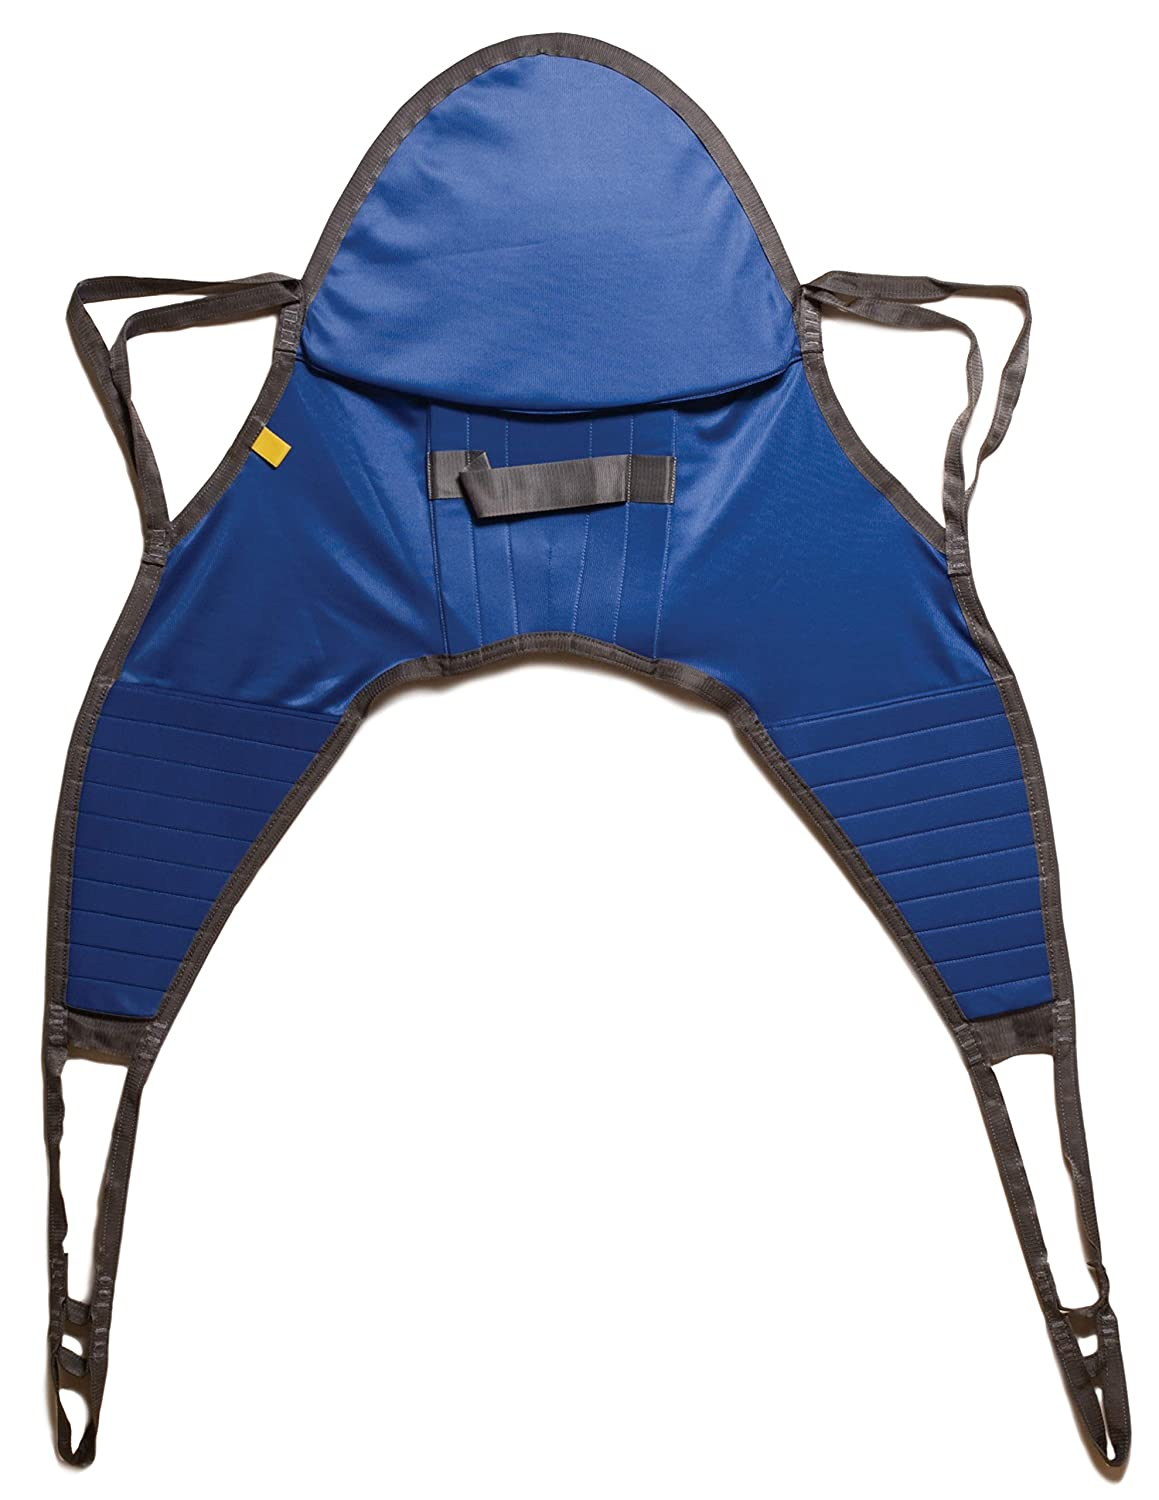 Lumex Hoyer Style Sling with Head Support for Patient Lifts, Solid Fabric, Medium, 500 Pounds, DSHC70012